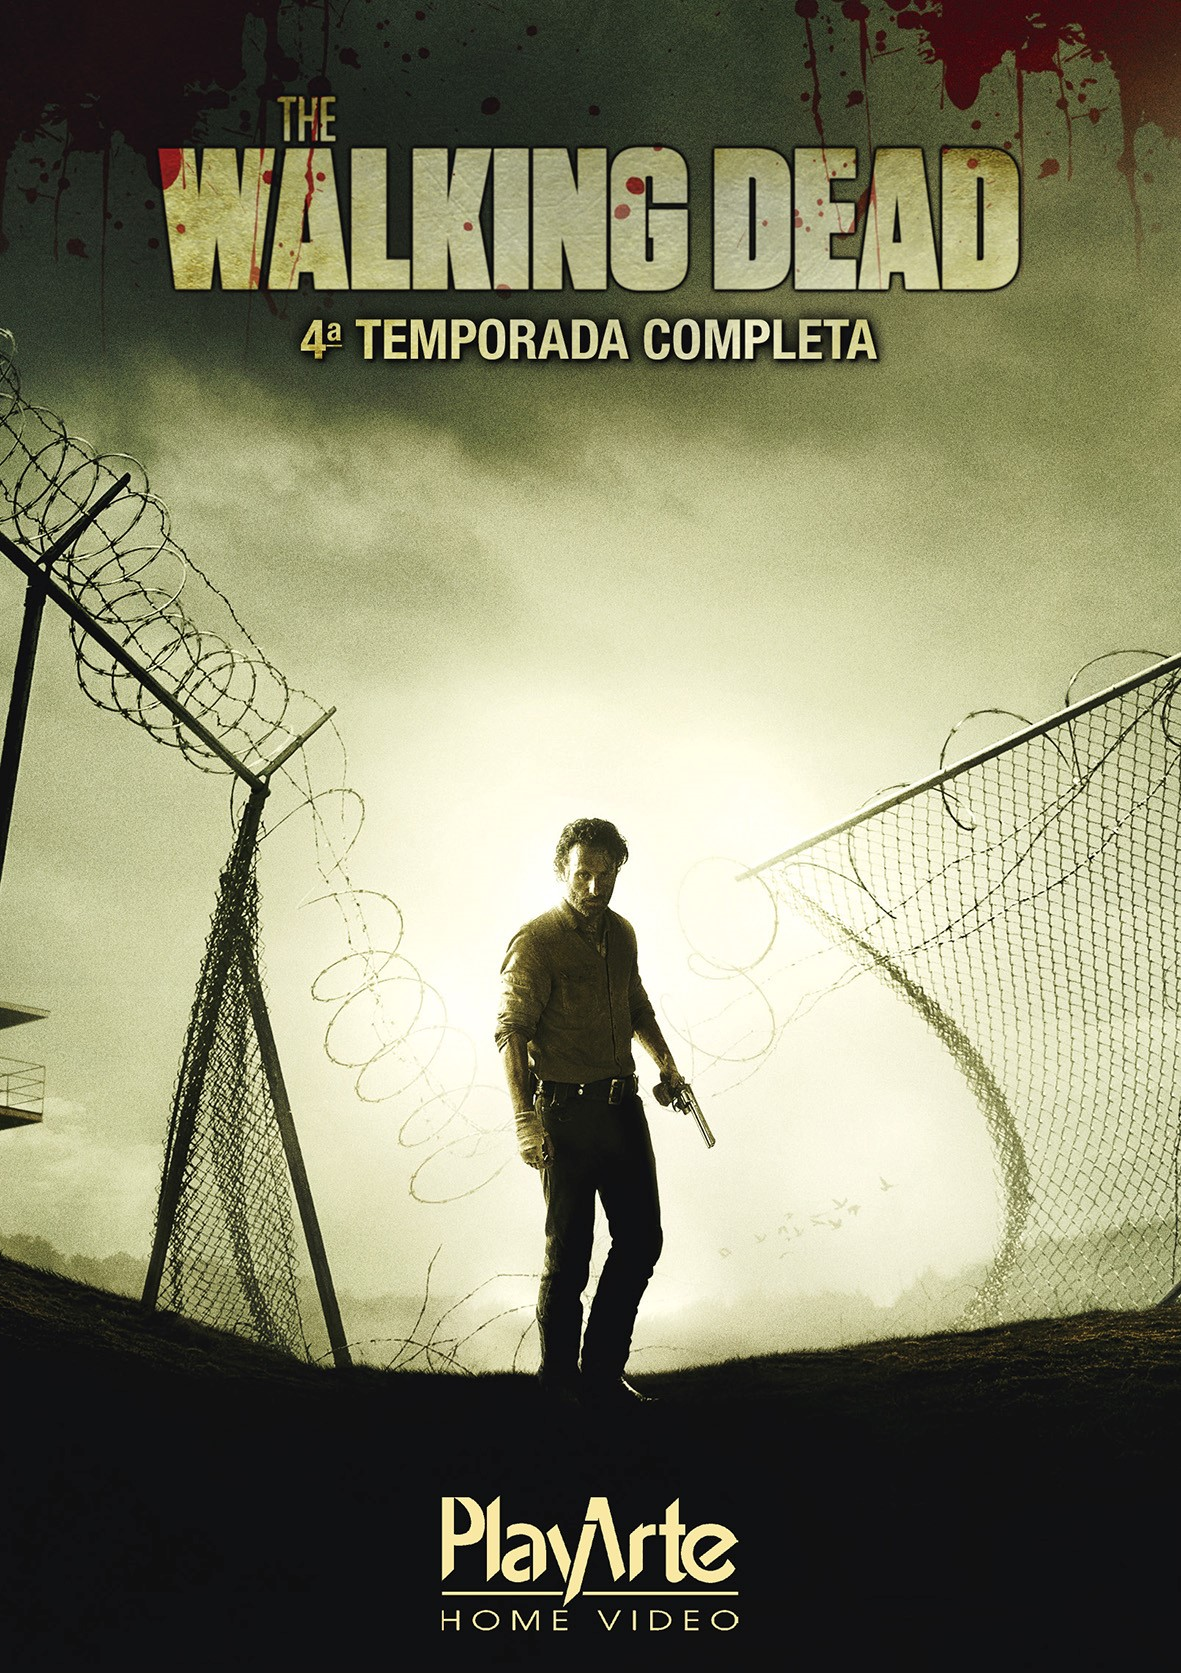 http://walkingdeadbr.com/wp-content/uploads/2015/01/